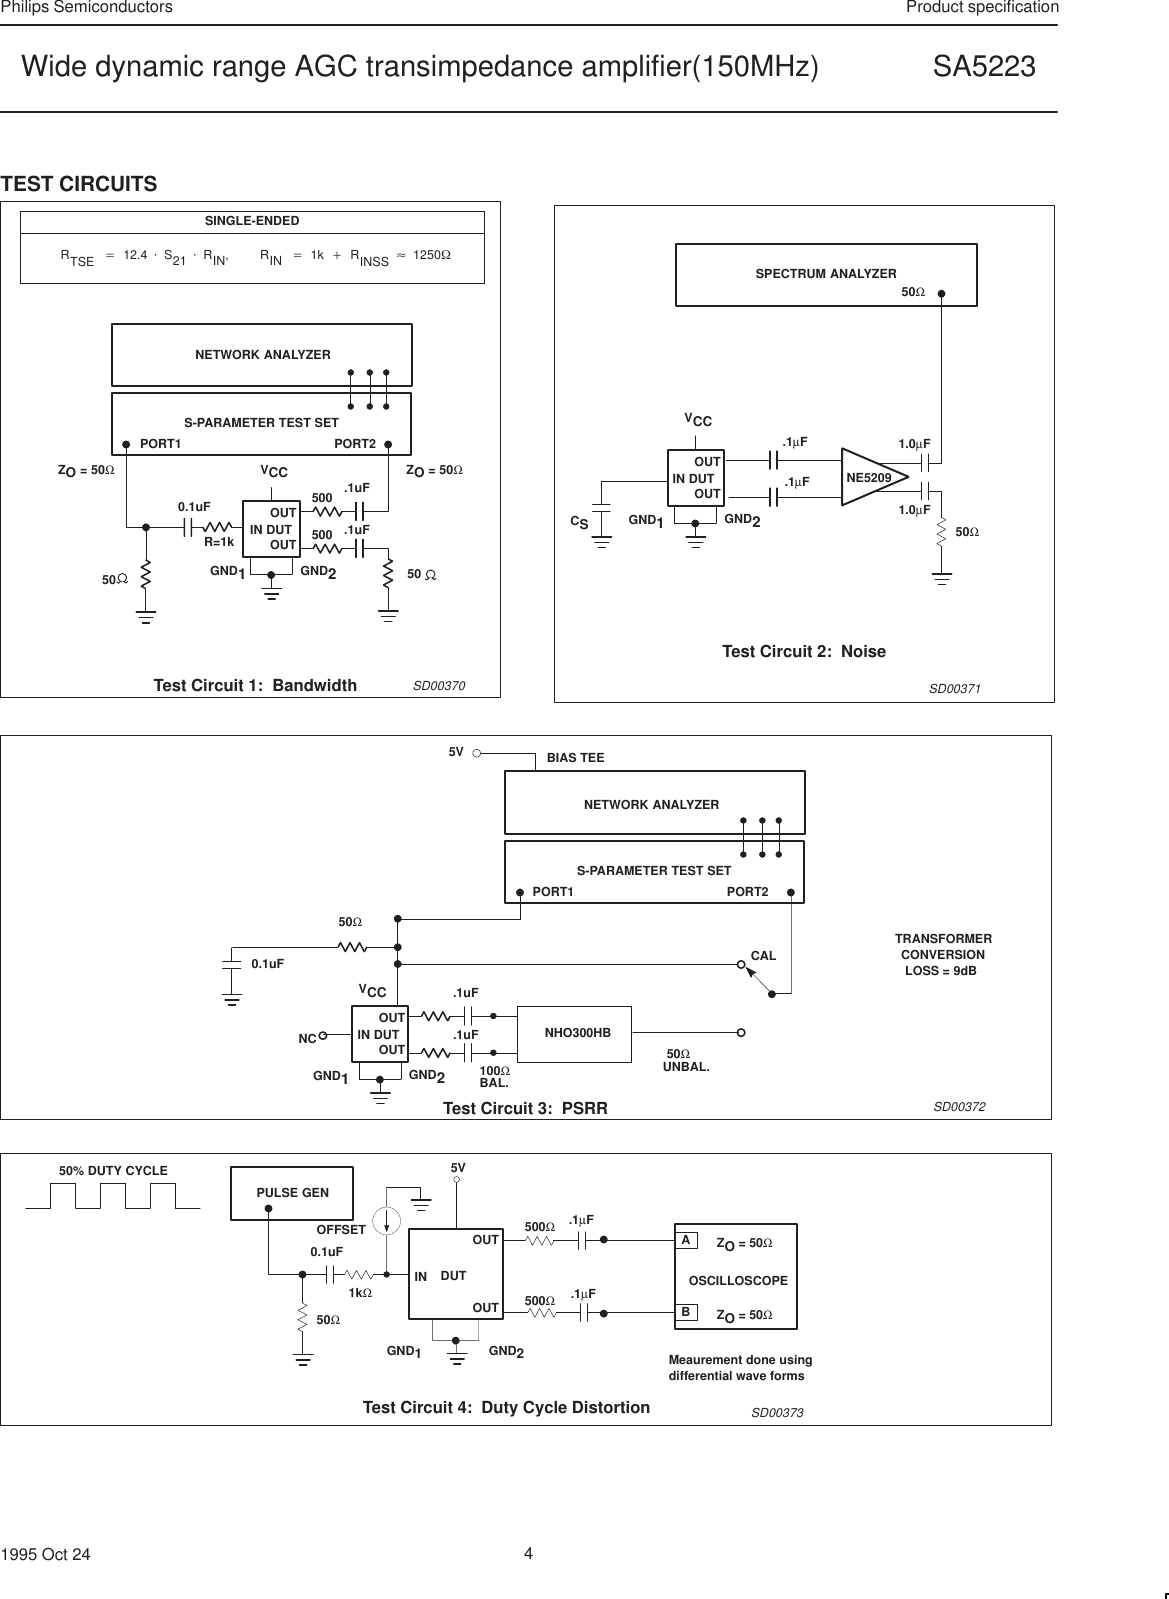 Philips Sa5223 Users Manual Wide Dynamic Range Agc Transimpedance The Amplifier Circuit Page 4 Of 12